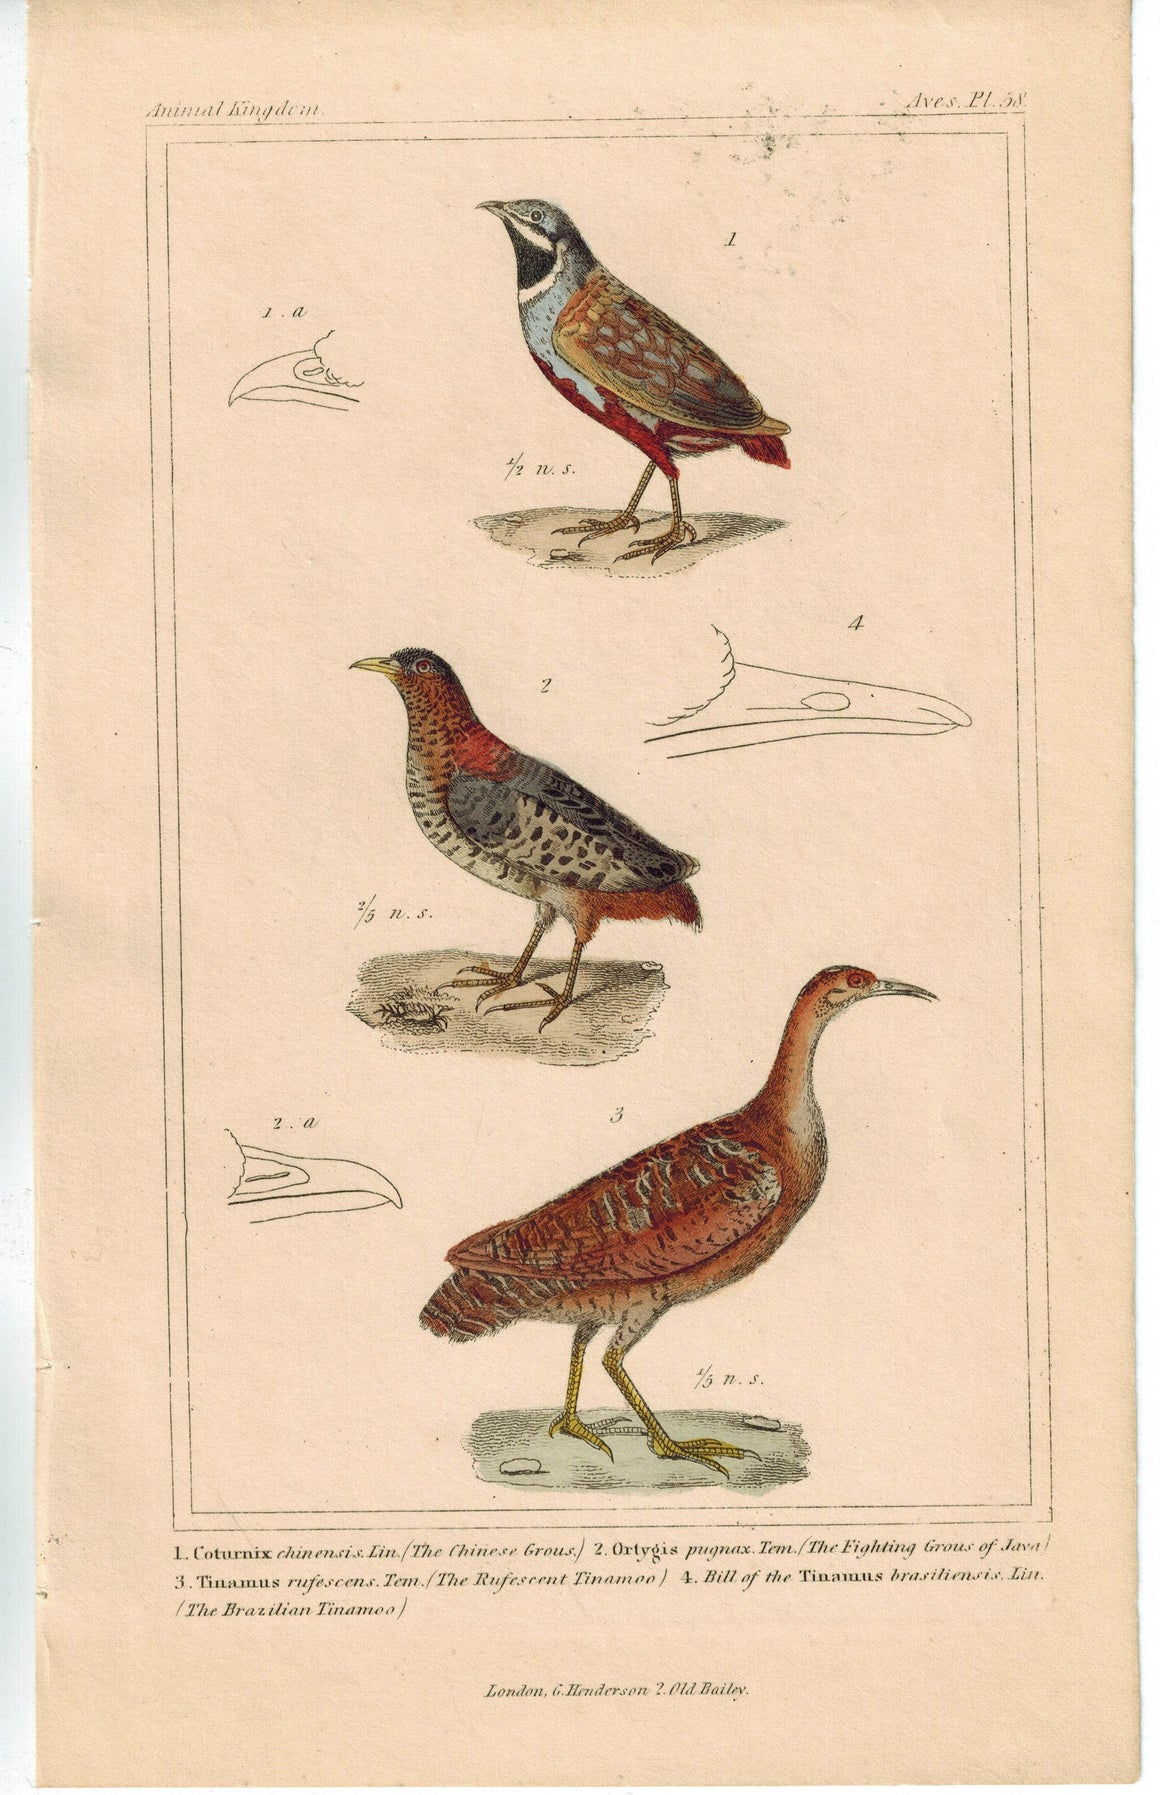 Birds Chinese Grouse & Brazilian Tinamoo 1837 Antique Engraved Cuvier Print